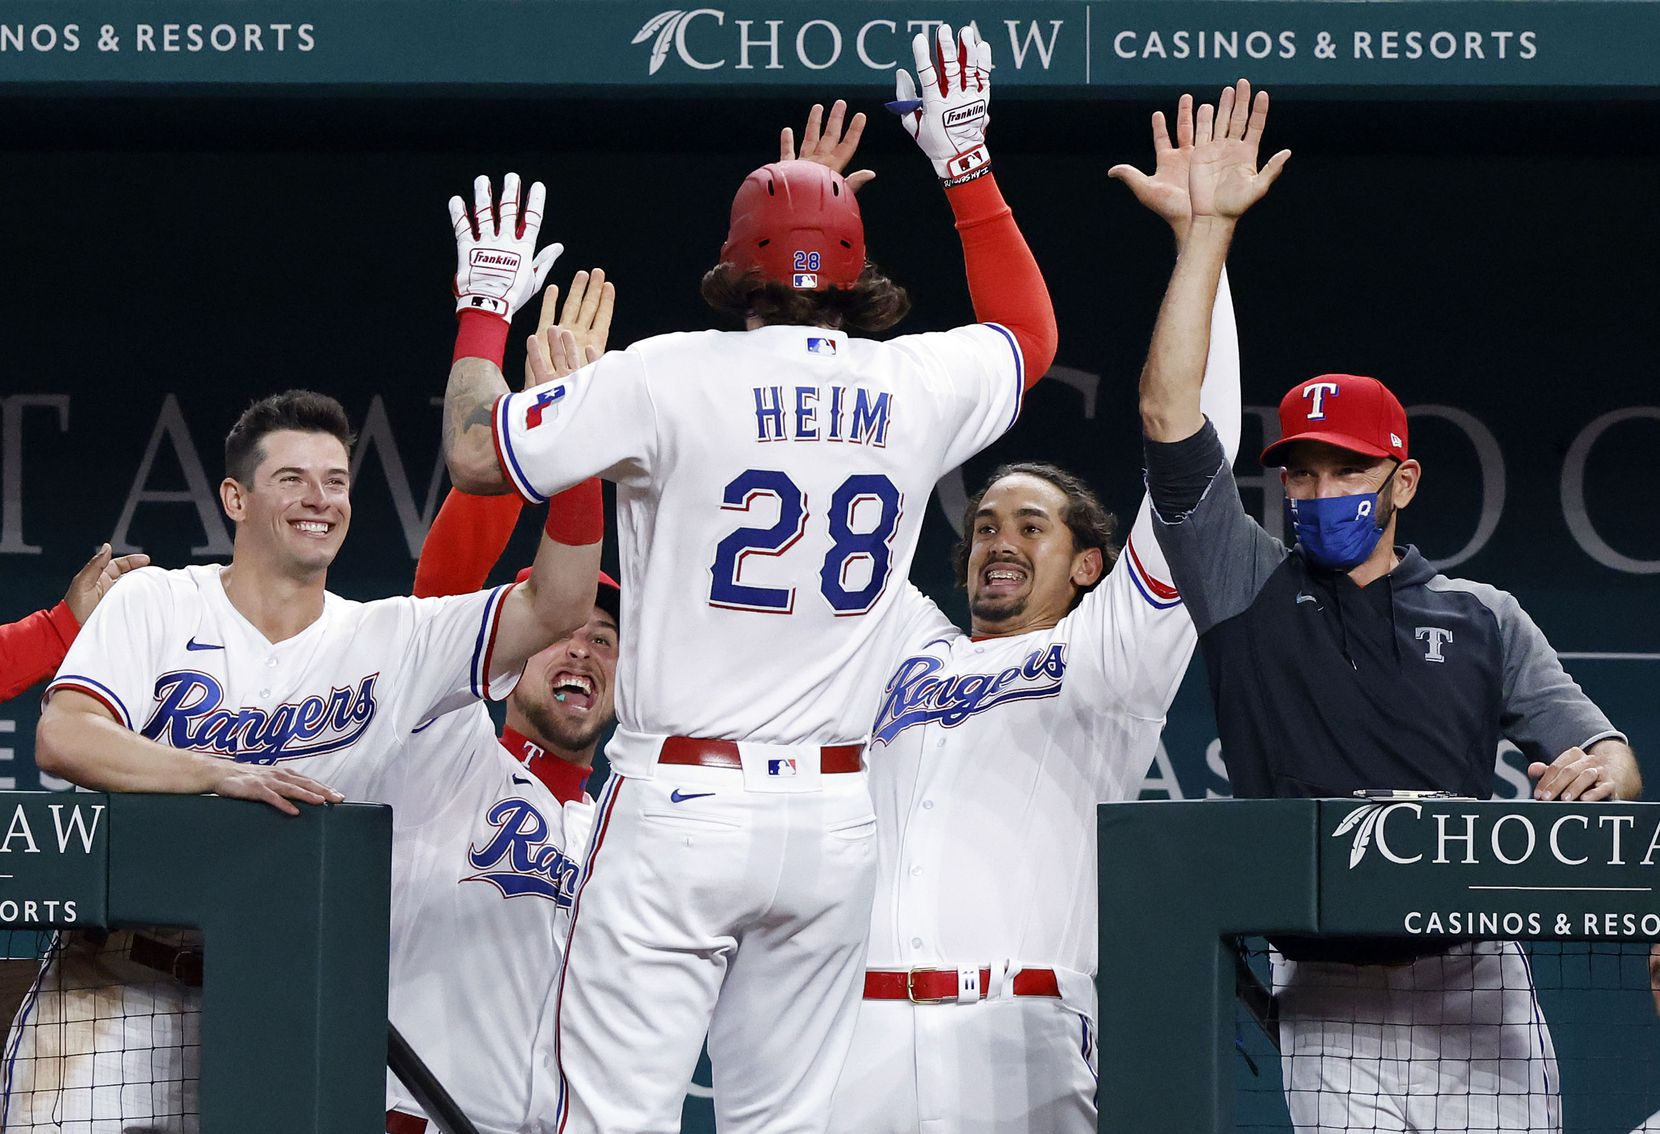 Texas Rangers Jonah Heim (28) is congratulated by manager Chris Woodward (right) and his teammates after hitting his first Major League home run during sixth inning against the Toronto Blue Jays at Globe Life Field in Arlington, Tuesday, April 7, 2021. (Tom Fox/The Dallas Morning News)